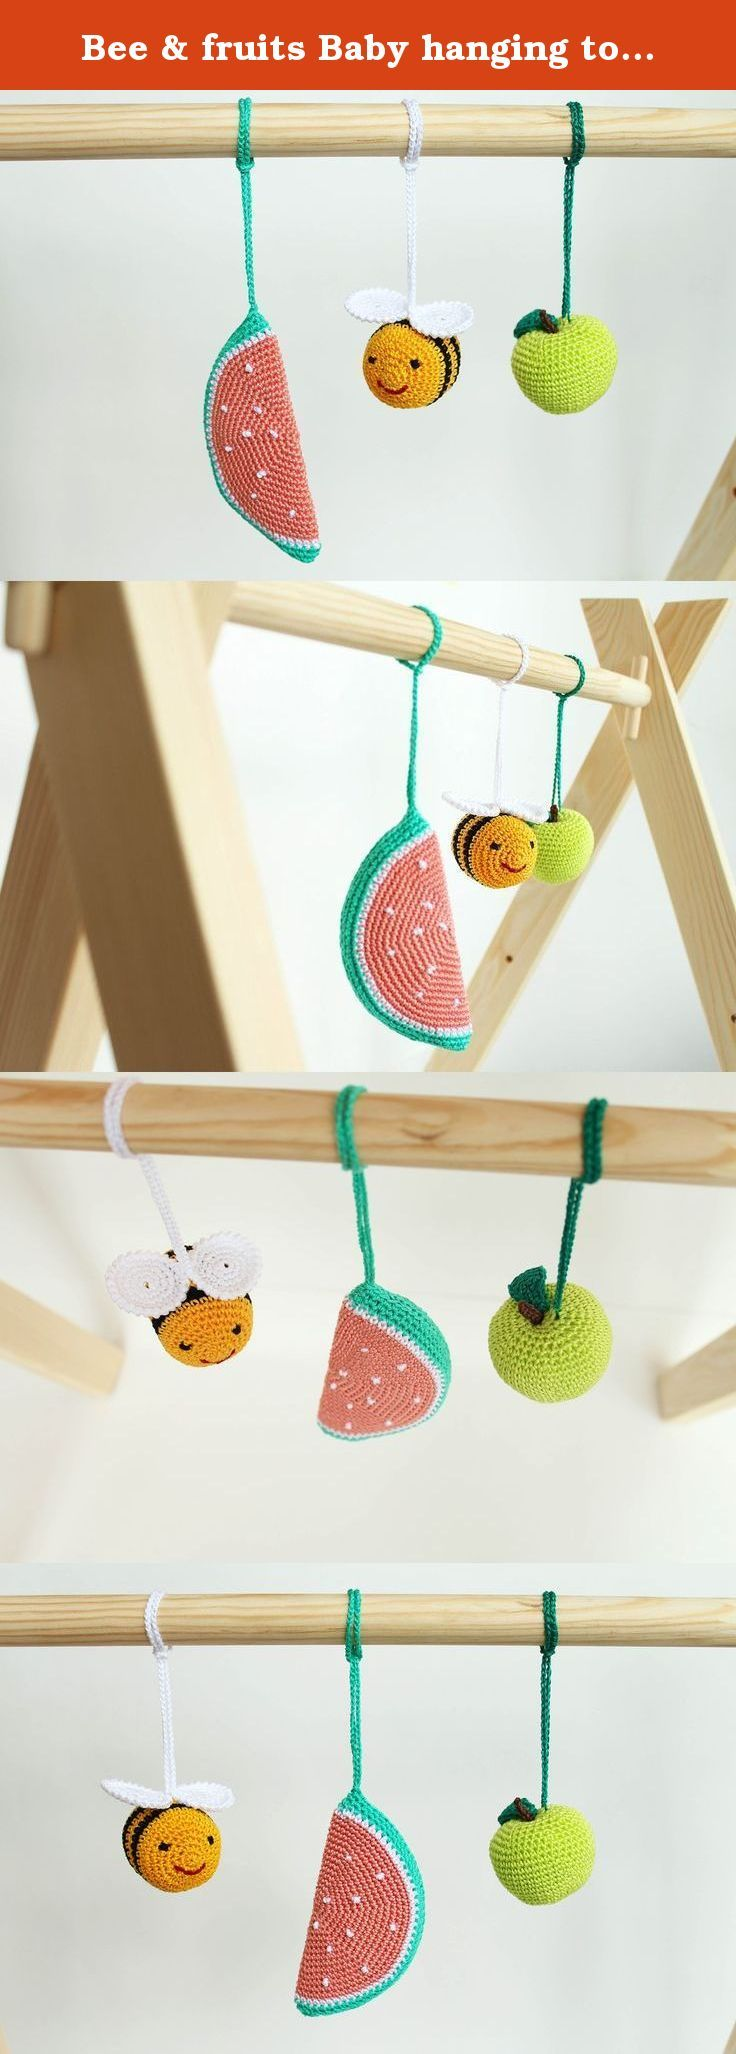 Crib gym for babies - Bee Fruits Baby Hanging Toy Play Gym Toy Crib Toy Baby Rattle